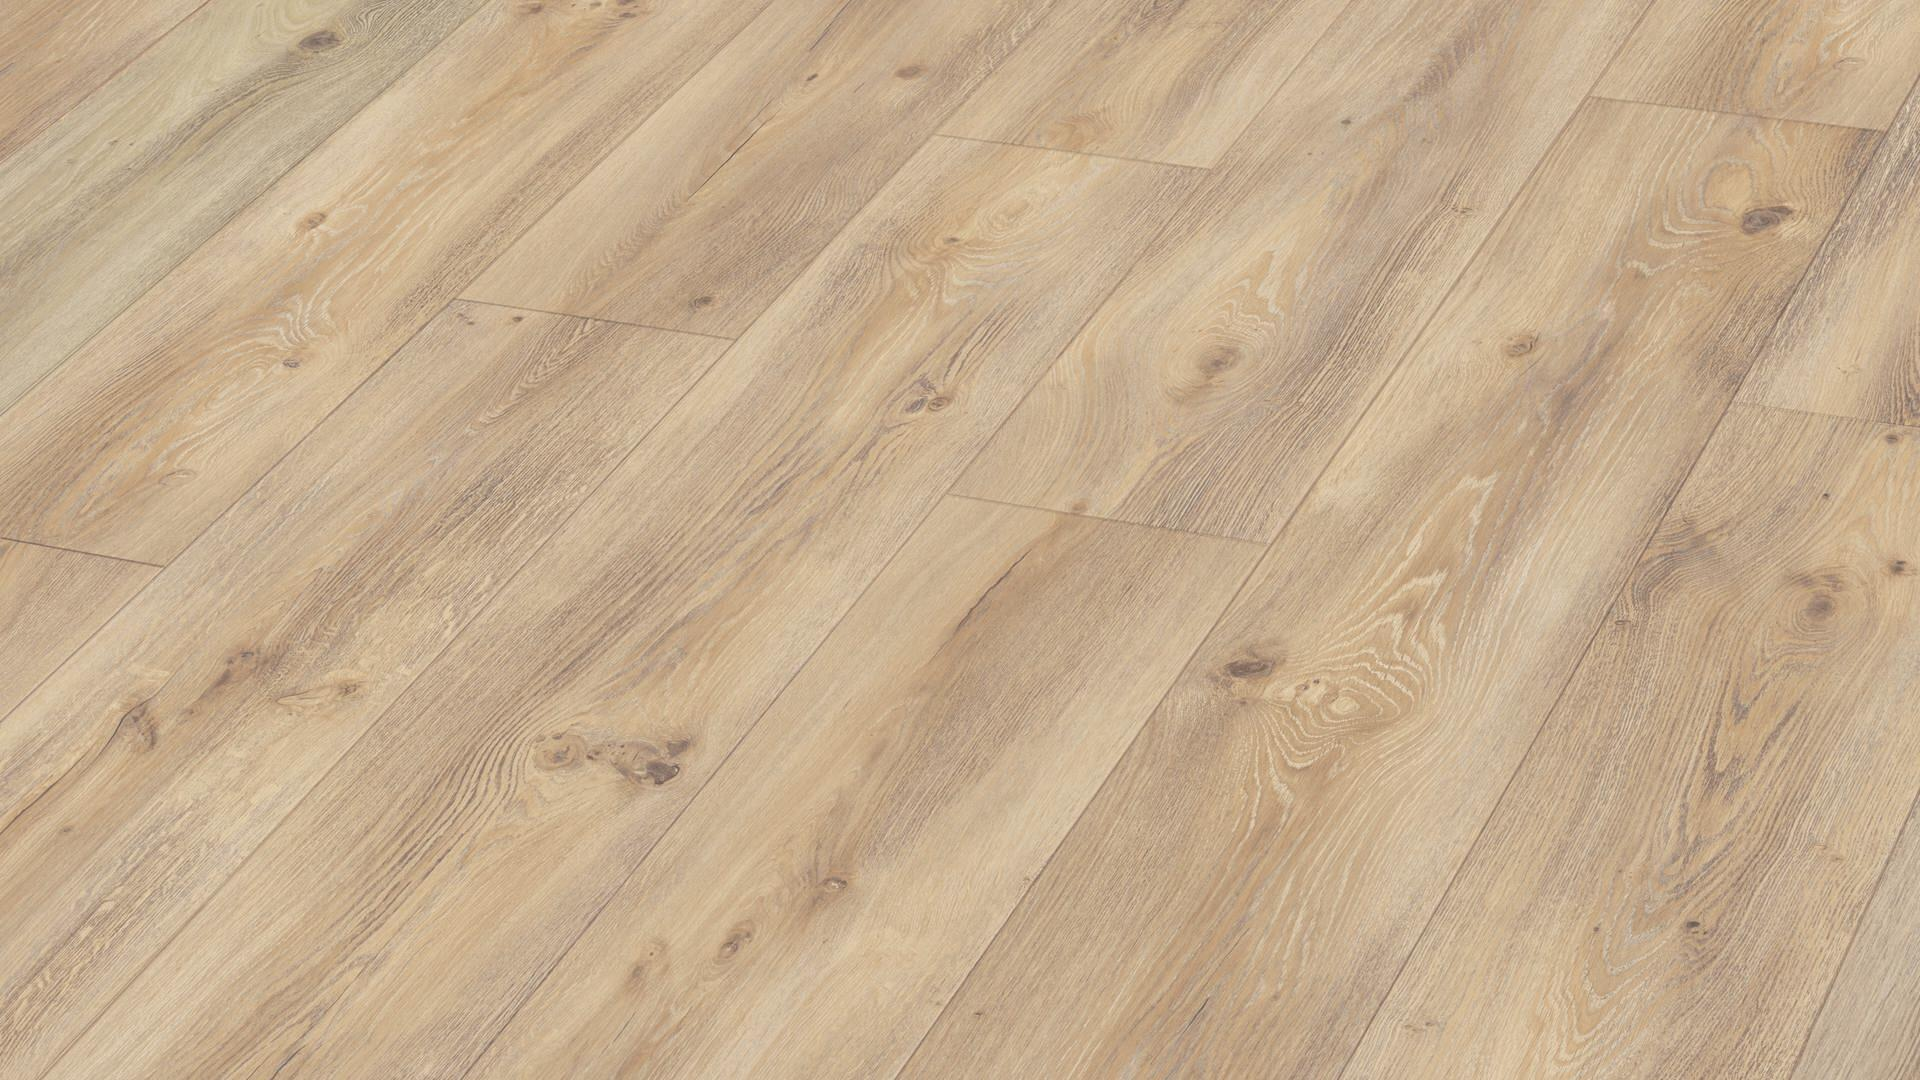 Laminate flooring MeisterDesign. laminate LD 250 Desert oak 6998